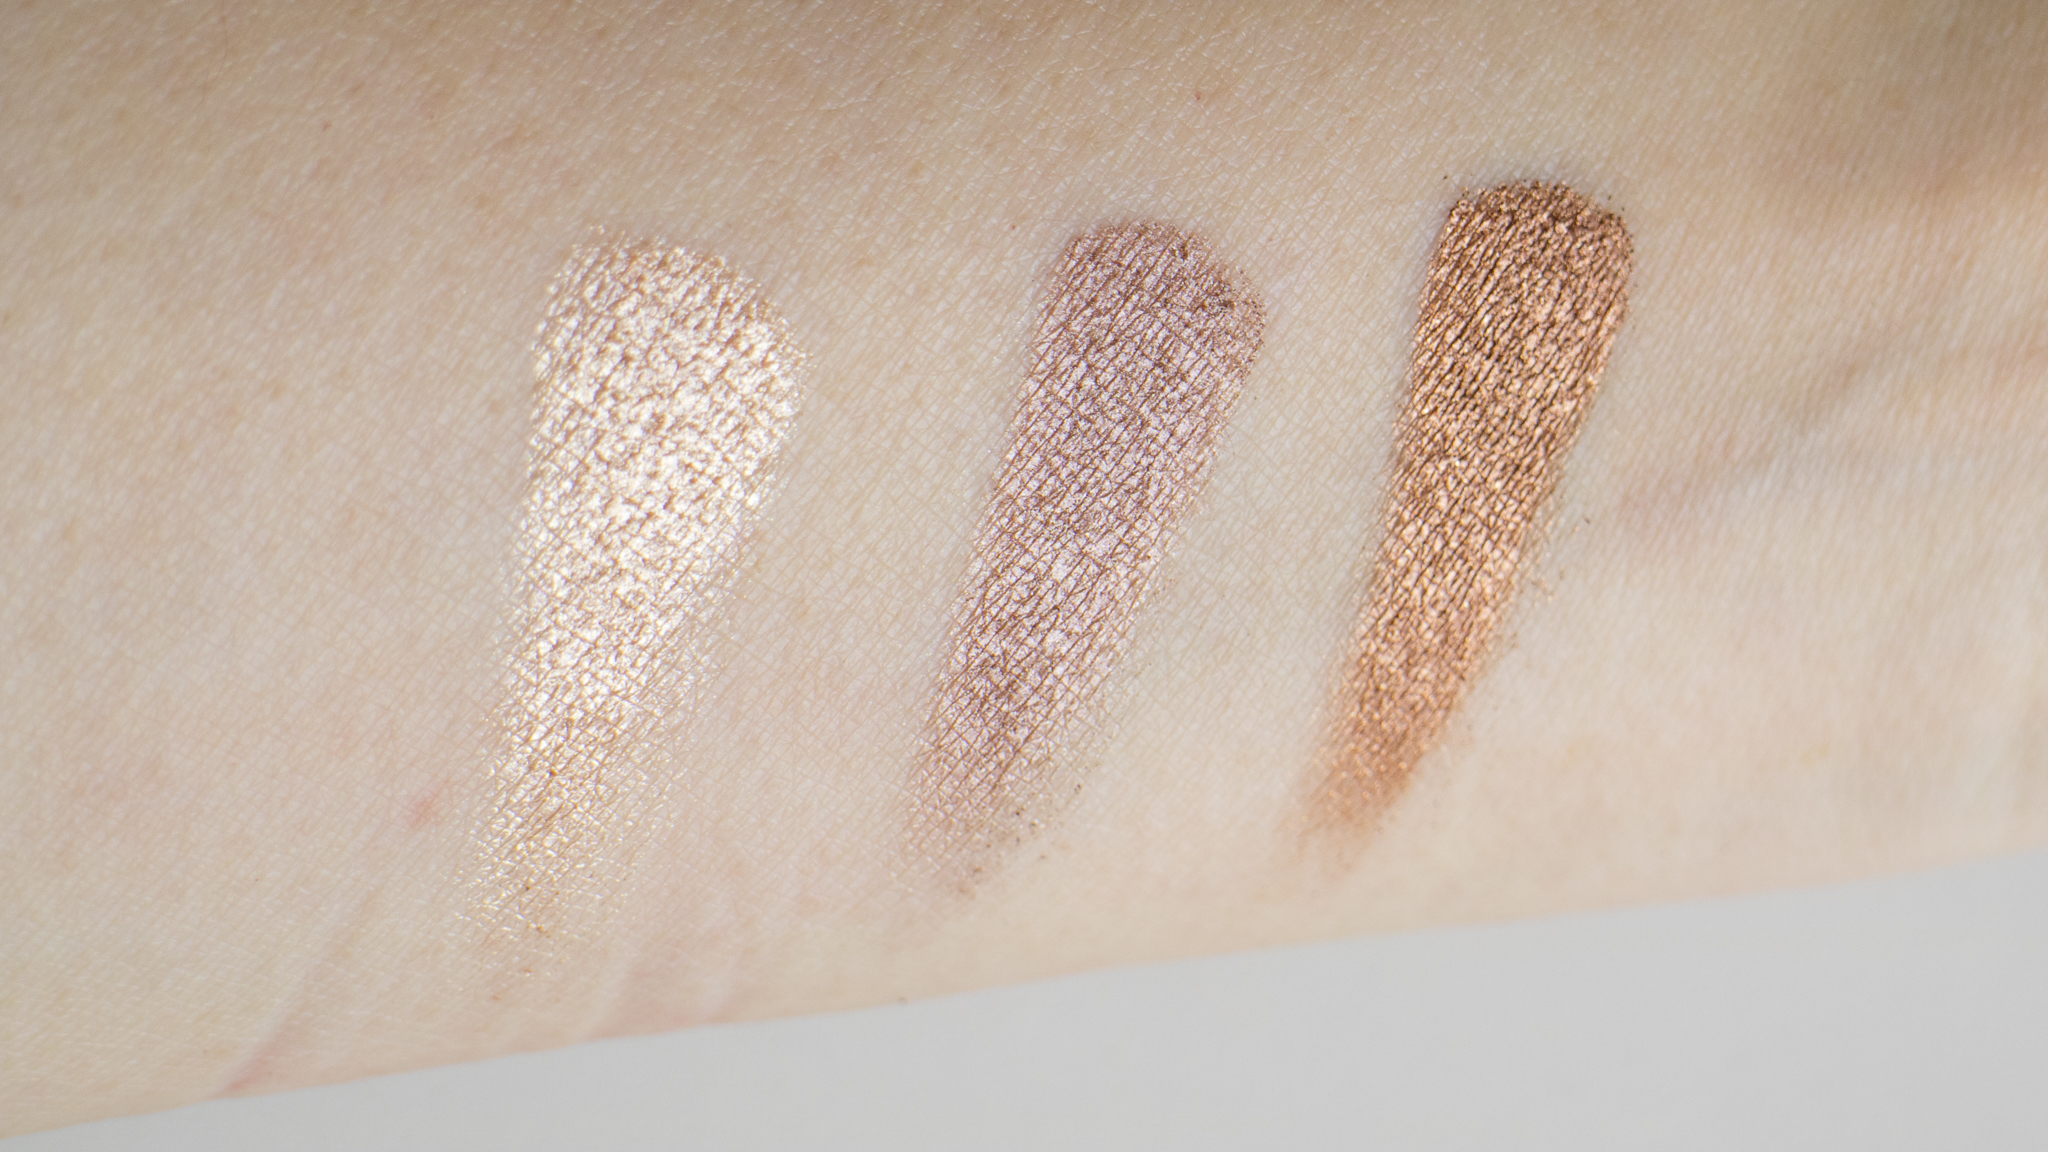 Tartelette in Bloom Luster Shades, from L to R: Funny Girl, Rocker, Firecracker